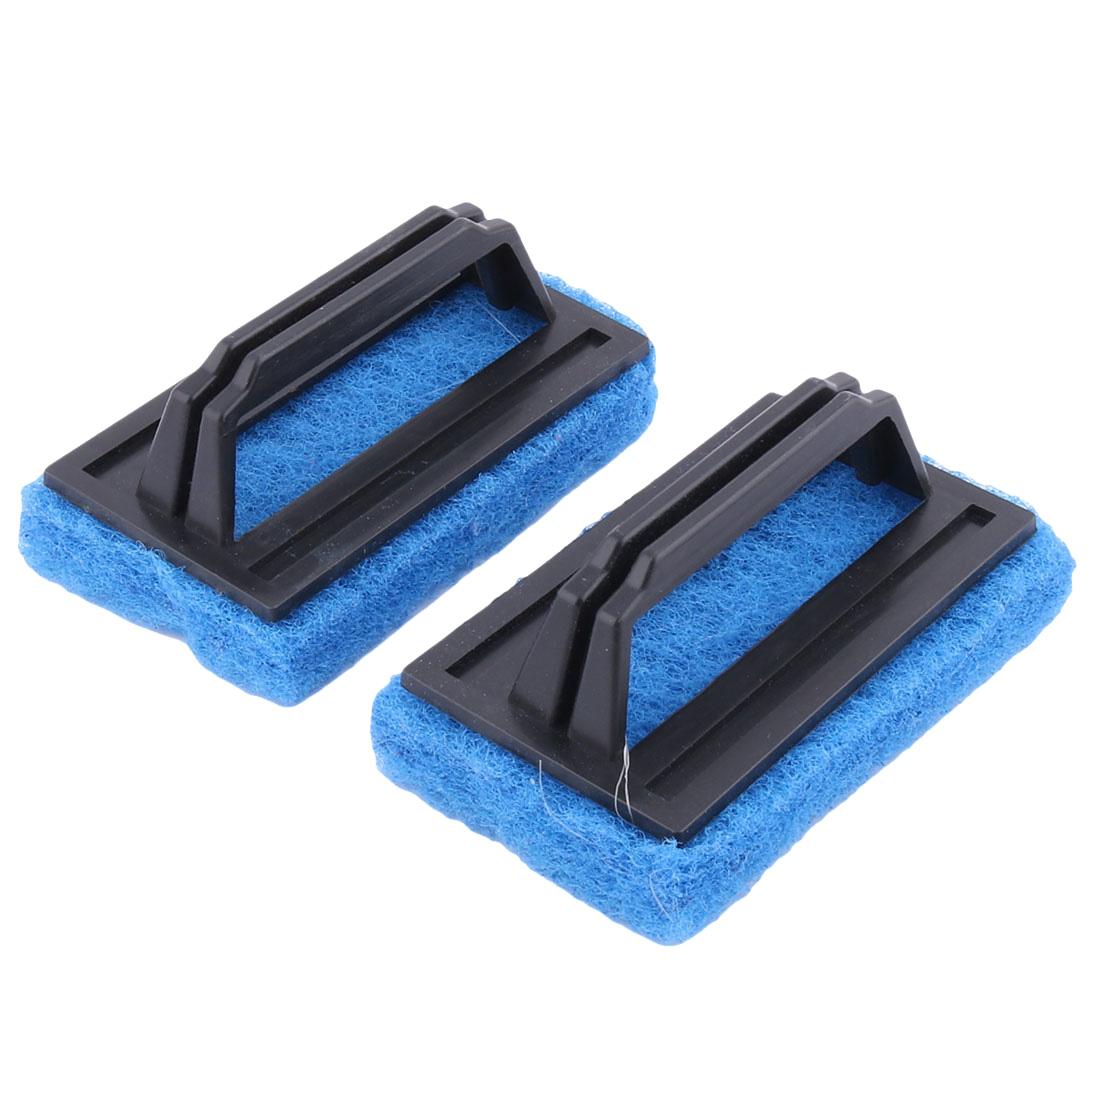 Household Kitchen Plastic Handle Sponge Cleaner Brush Cleaning Tool Blue 2 Pcs